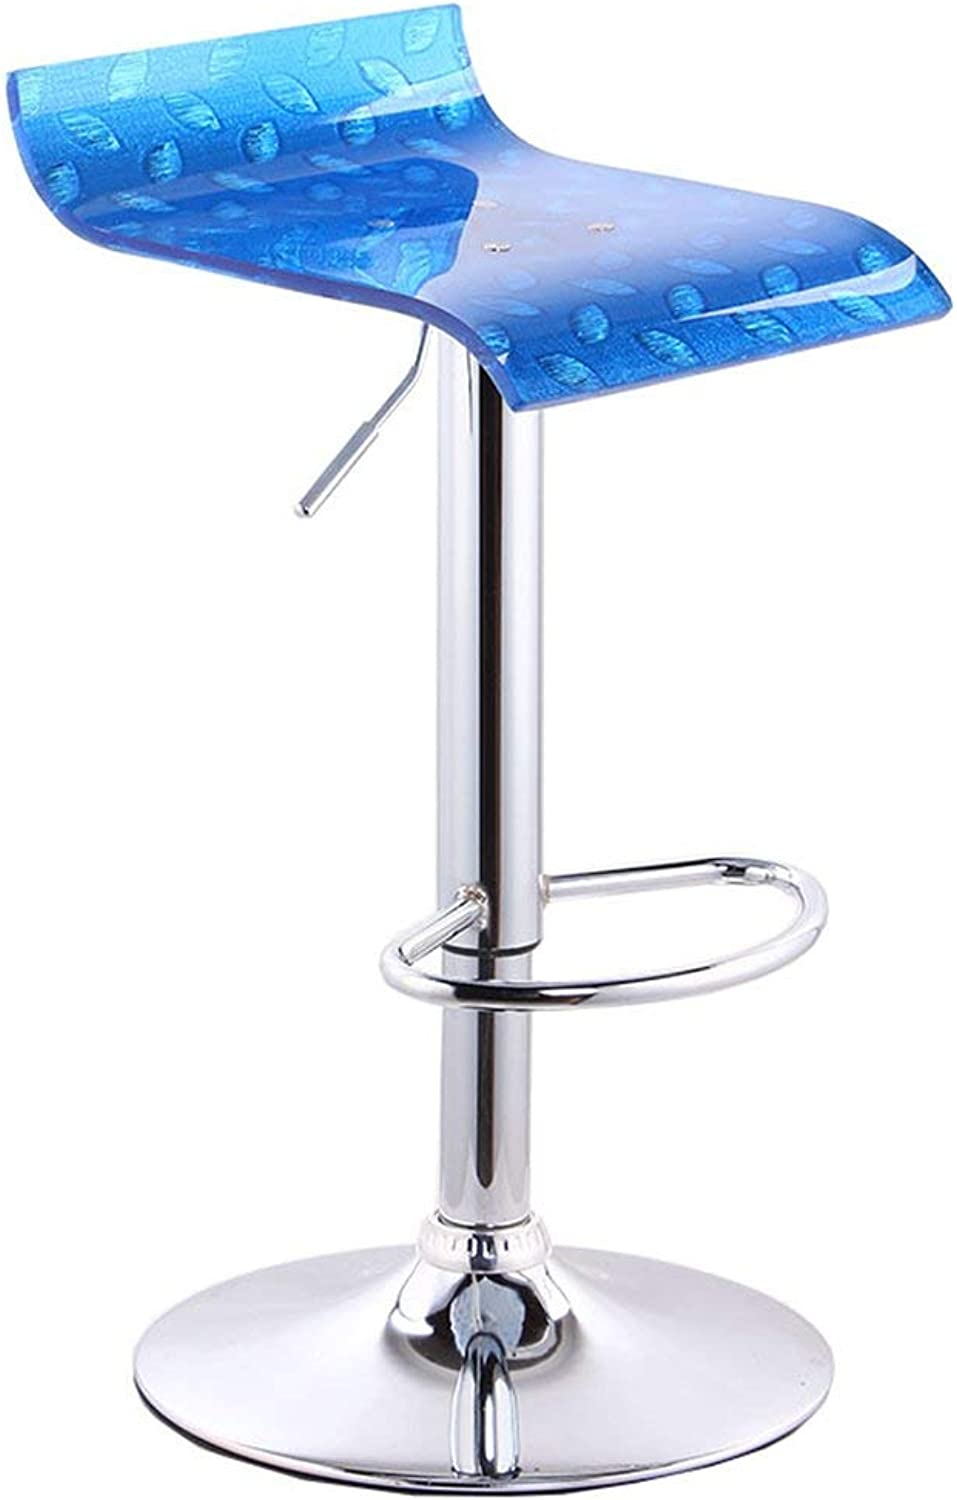 JZX Chair- Bar Stool Acrylic + Metal Stylish Simplicity Strong and Durable Height Adjustable Family Bar Cafe Practical Chair